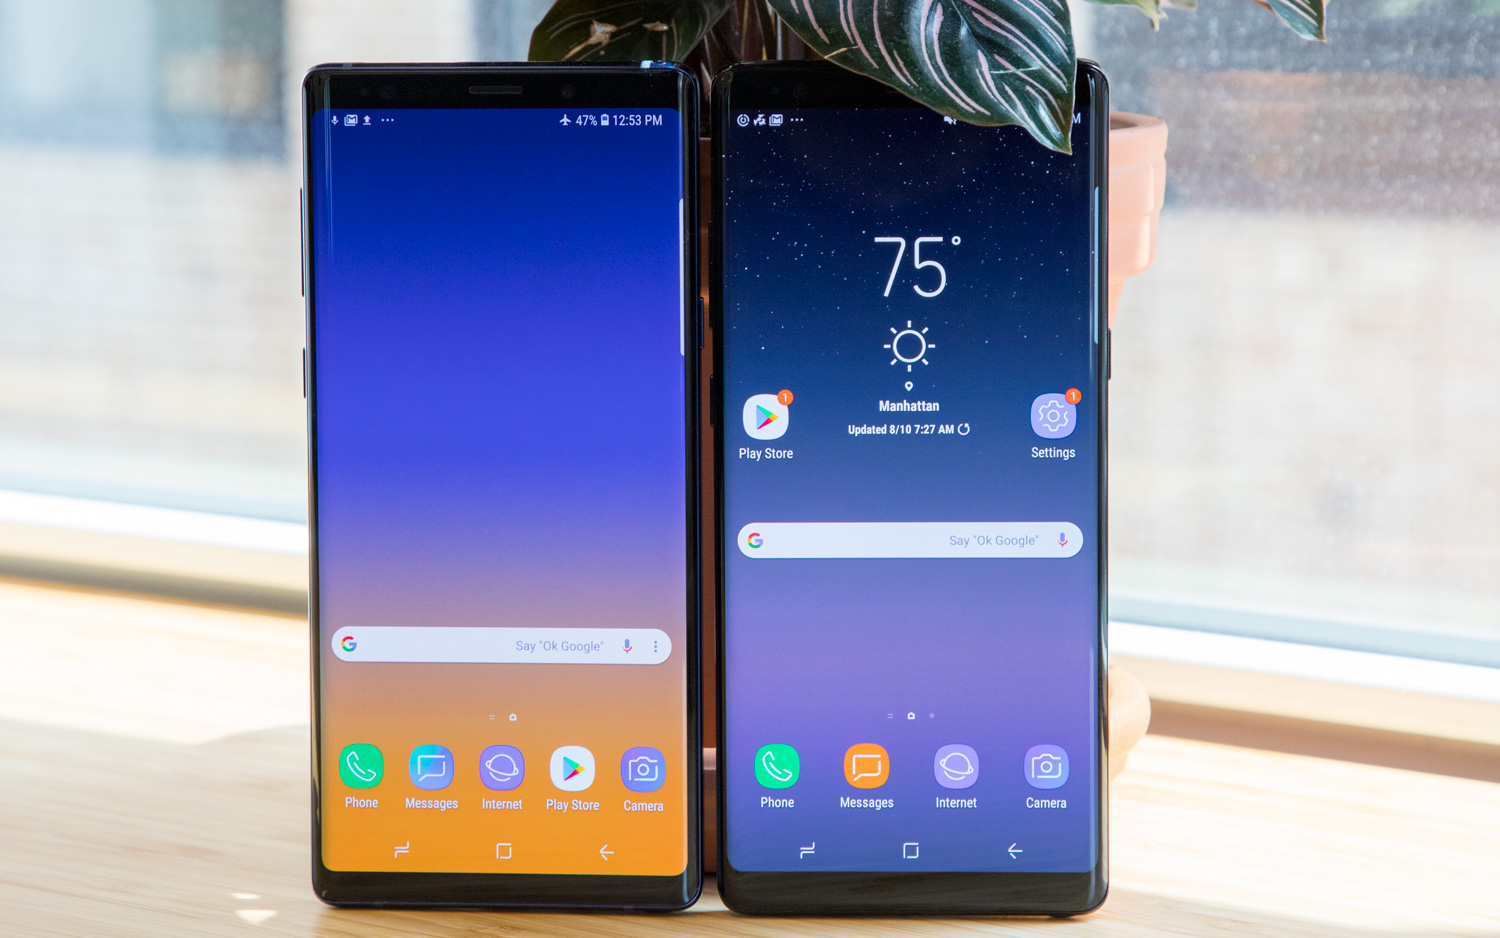 The Galaxy Note 9 Does Deliver Better Sustained Performance Than The Galaxy S9 Which Doesnt Benefit From The Note 9s More Advanced Carbon Water Cooling